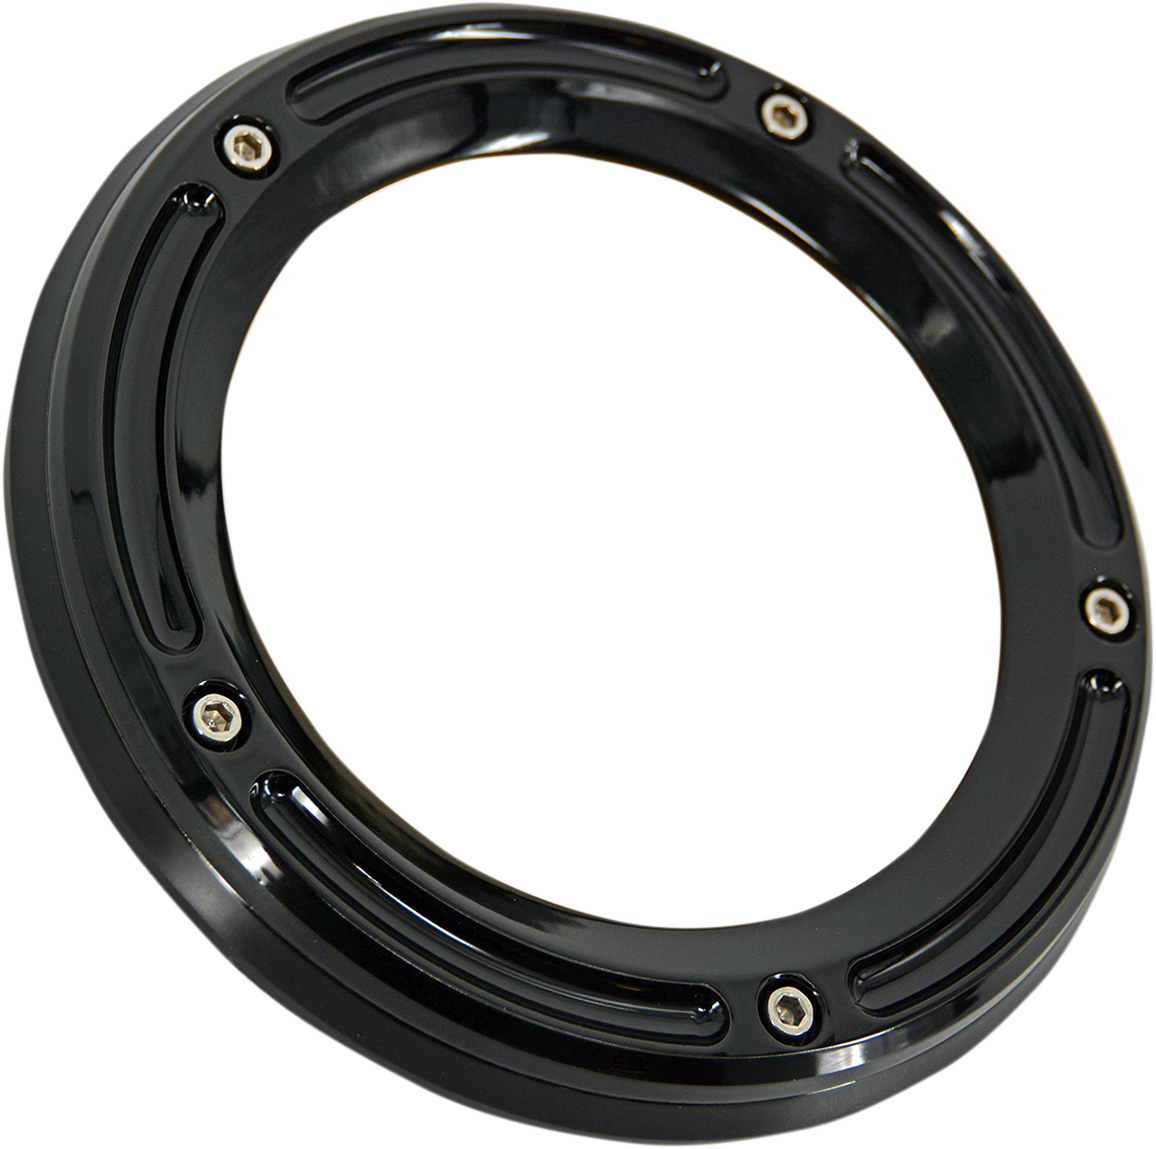 Trask Black Assault See Through 5 Hole Derby Cover 99-17 Harley Touring Softail